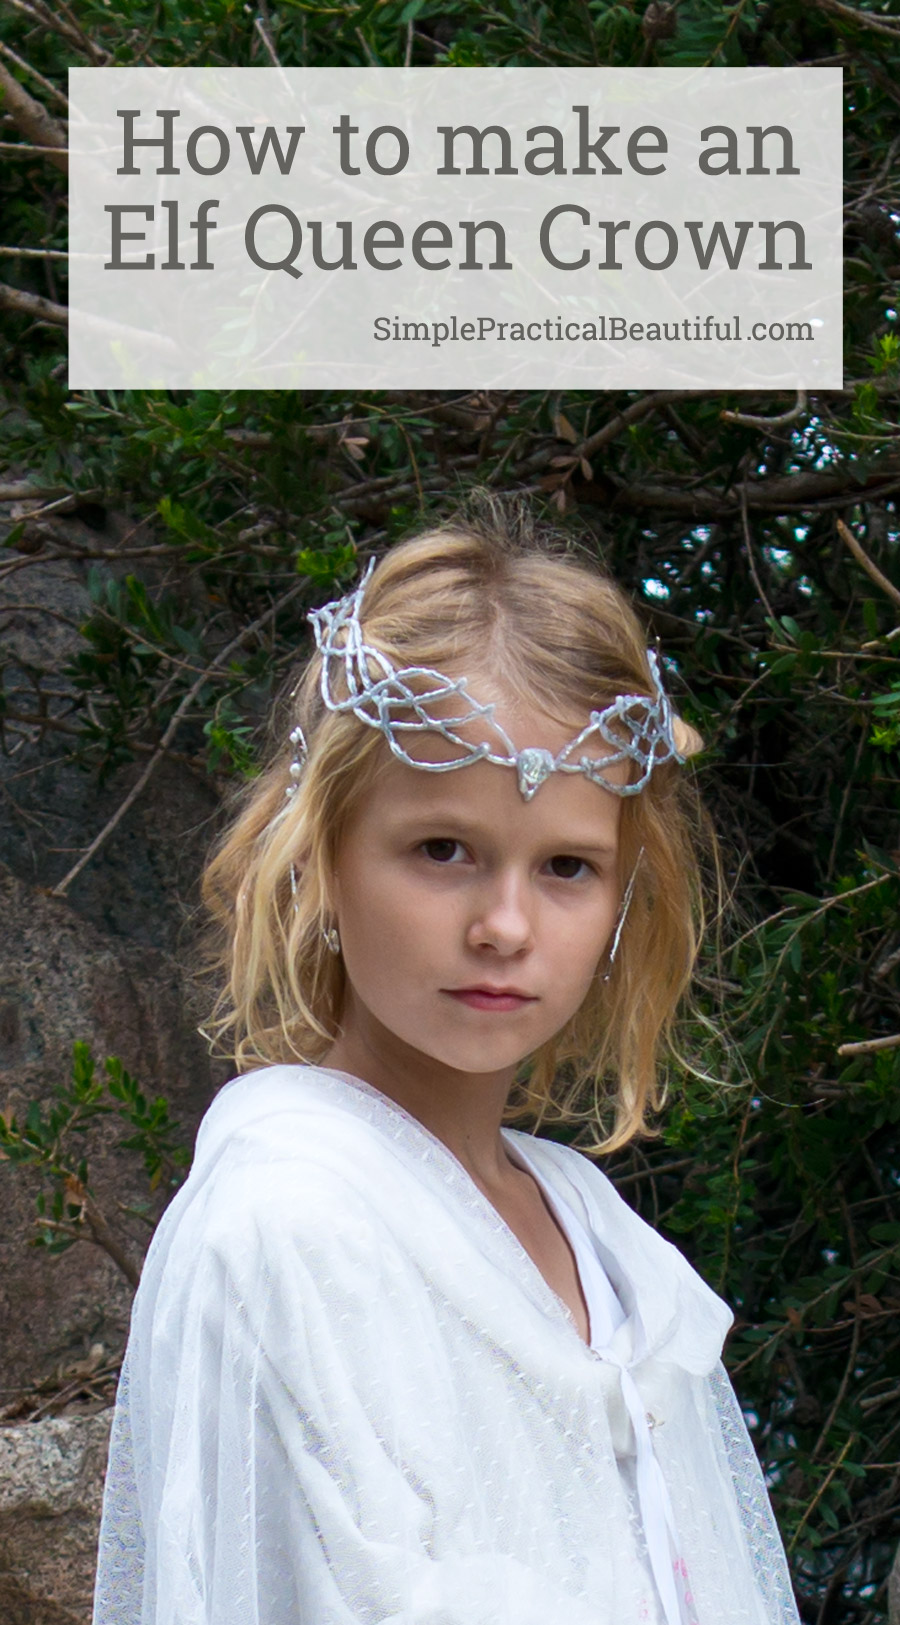 How to make a Galadriel crown with a glue gun that looks like silver | Halloween costume or cosplay | Elf costume crown | Lord of the Rings